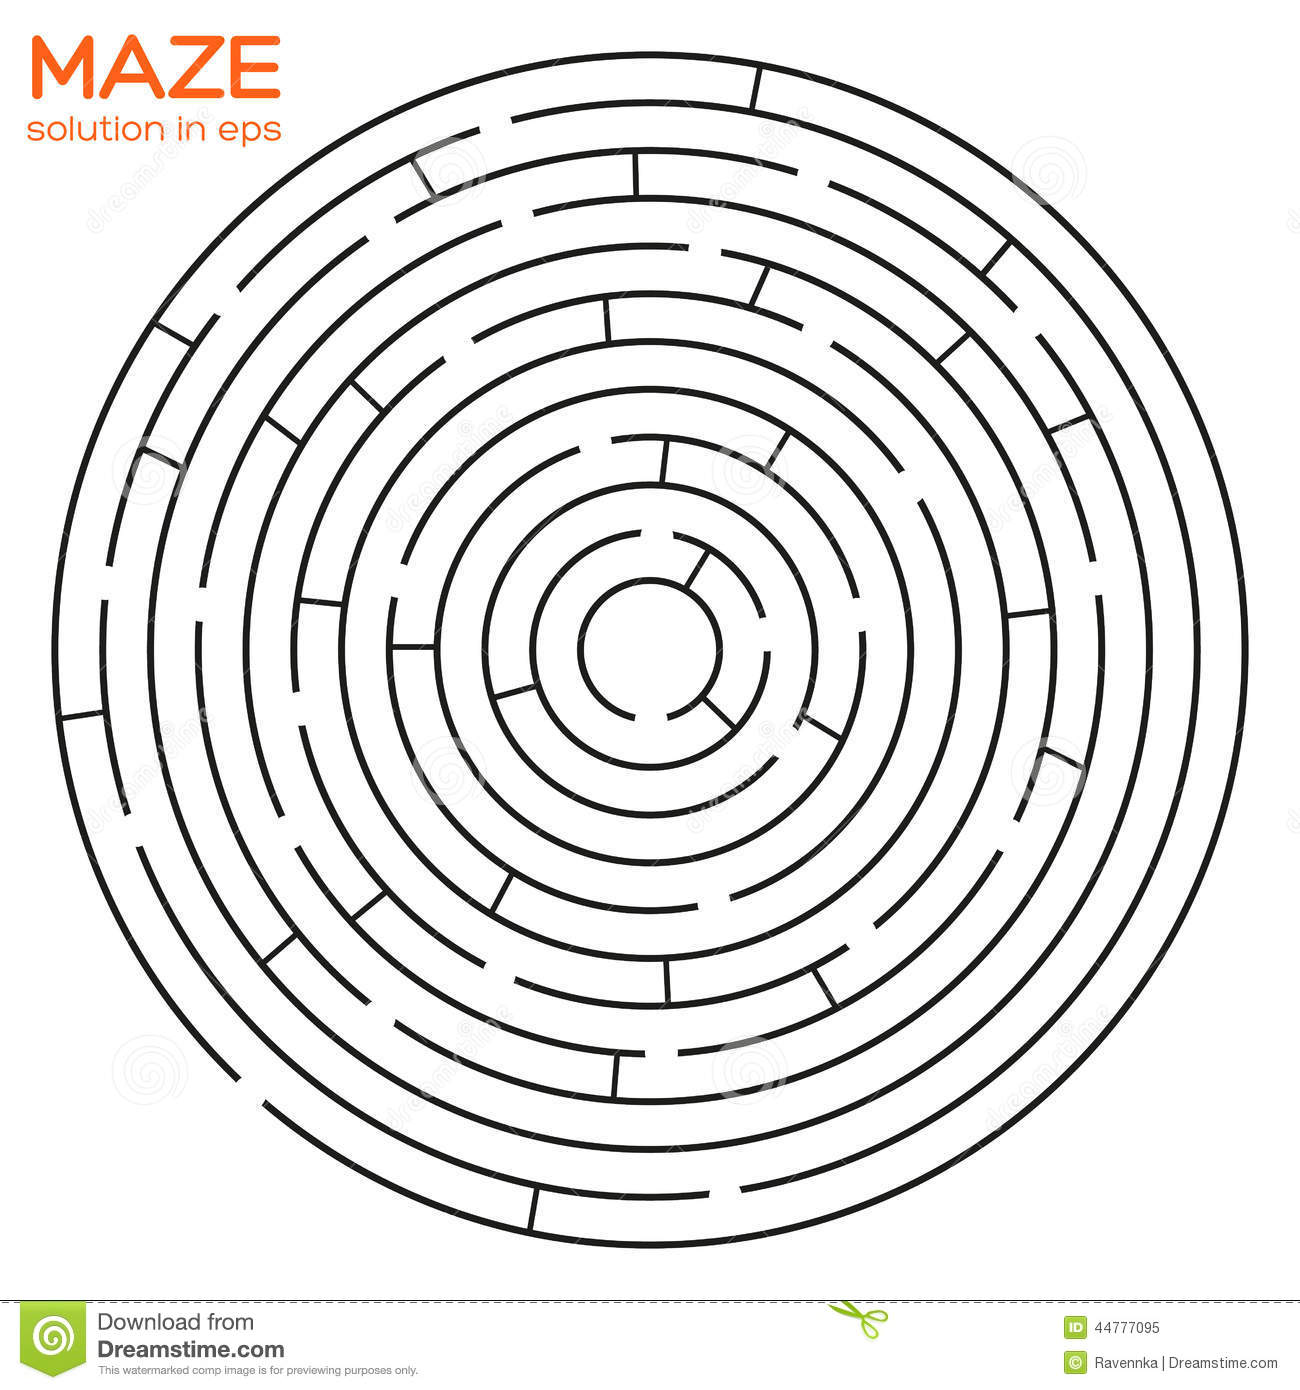 Circular Maze With Solution In Eps Stock Vector - Image: 44777095